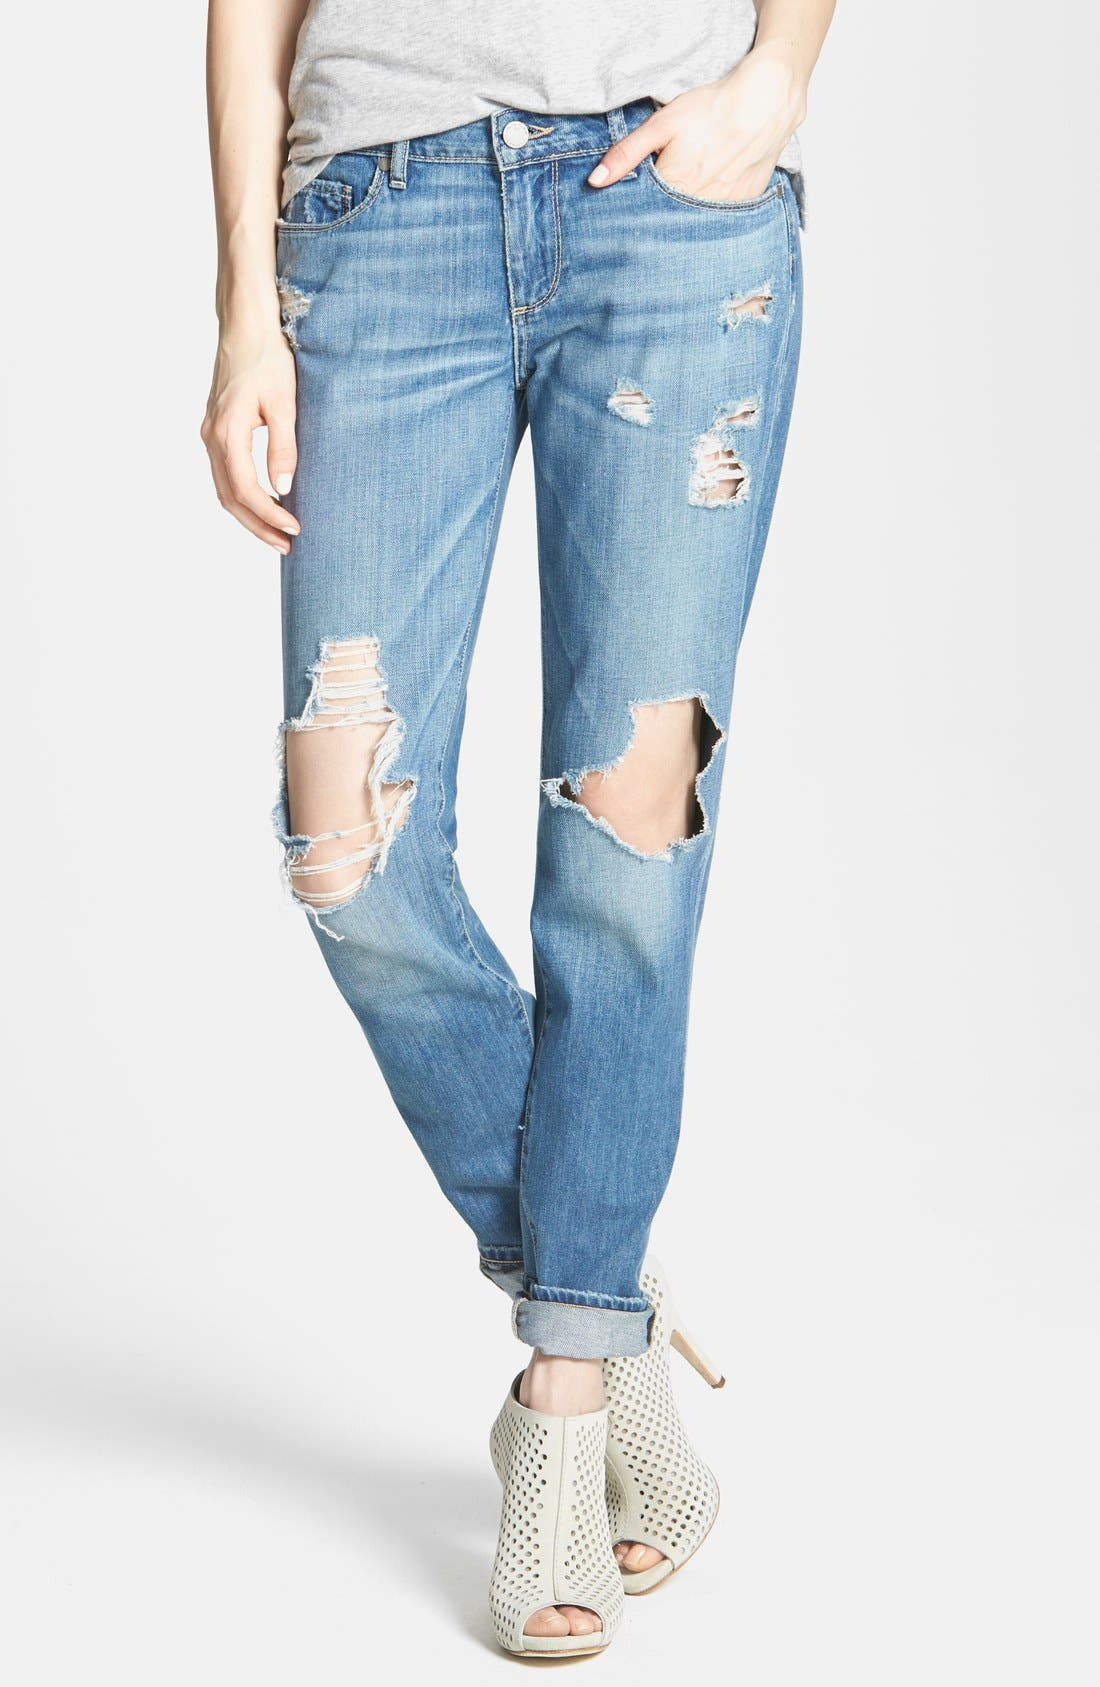 Alternate Image 1 Selected - Paige Denim 'Jimmy Jimmy' Destroyed Boyfriend Jeans (Clifton)